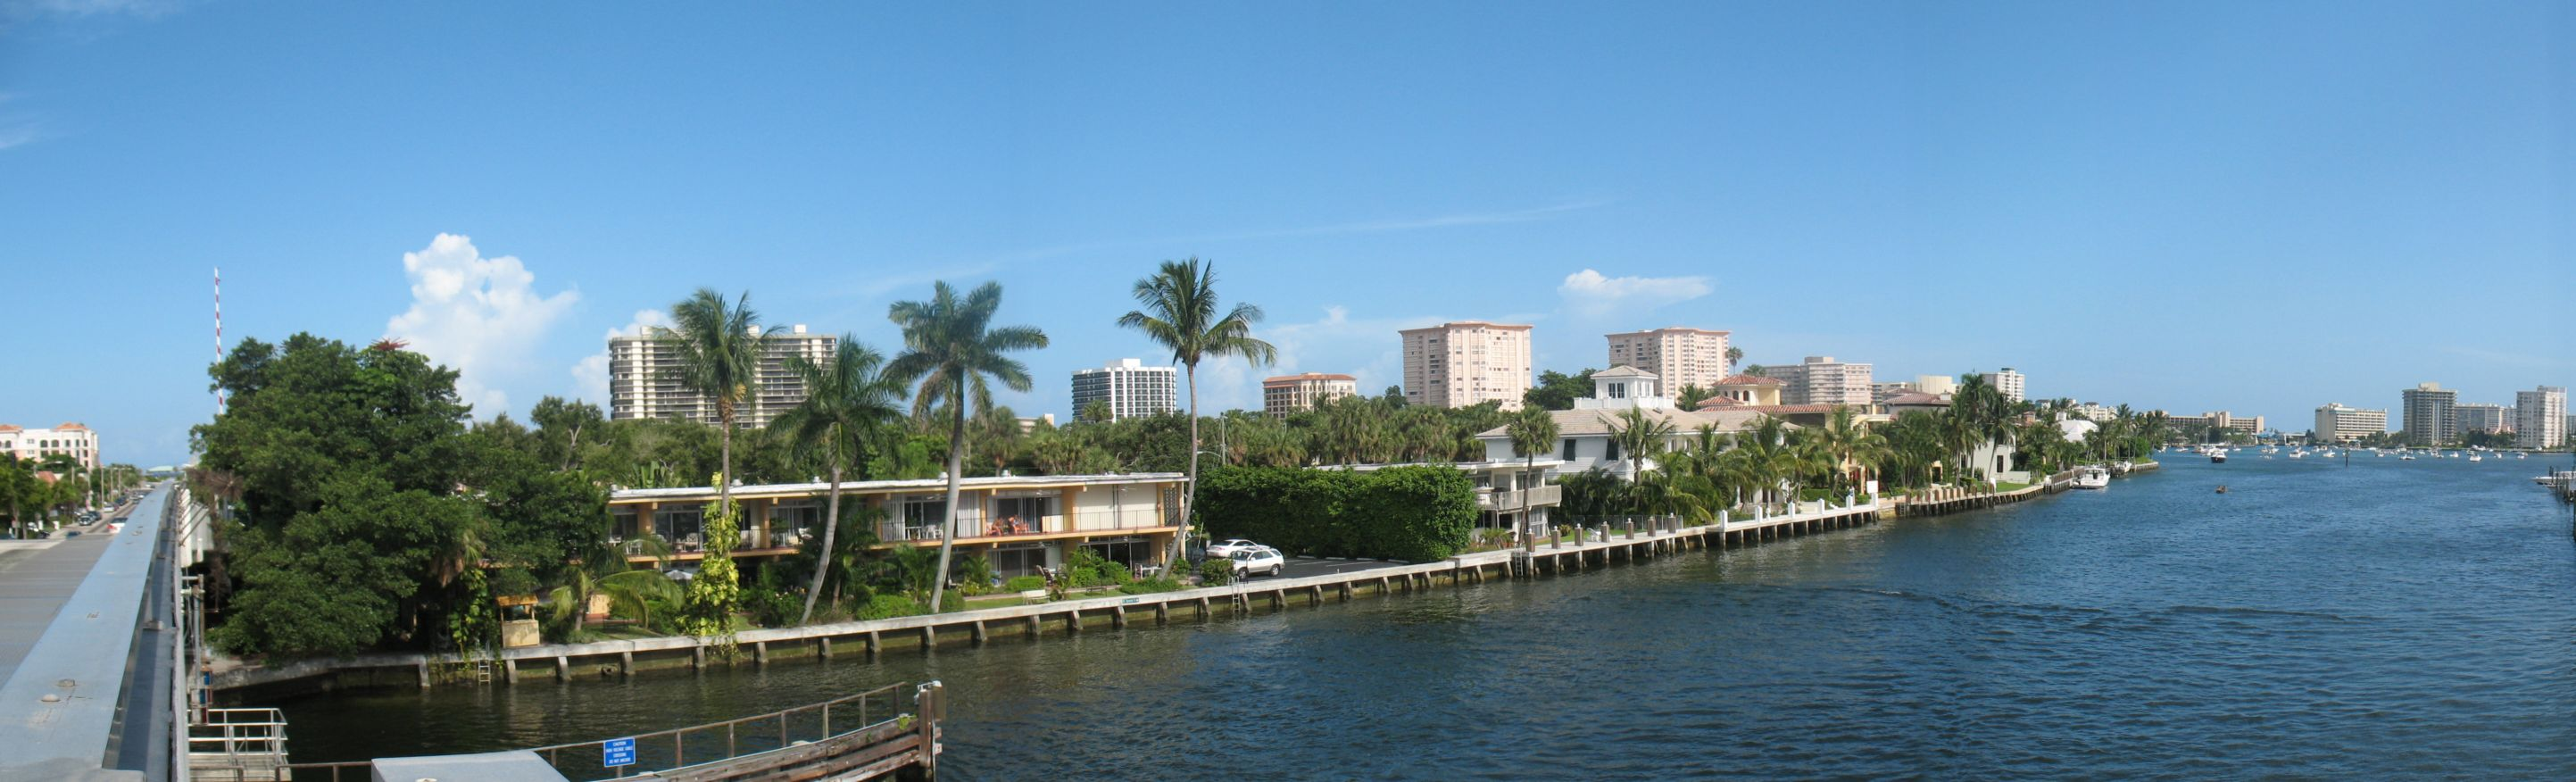 If you're looking for a great mix of paradise and charm, consider the City of Boca Raton!